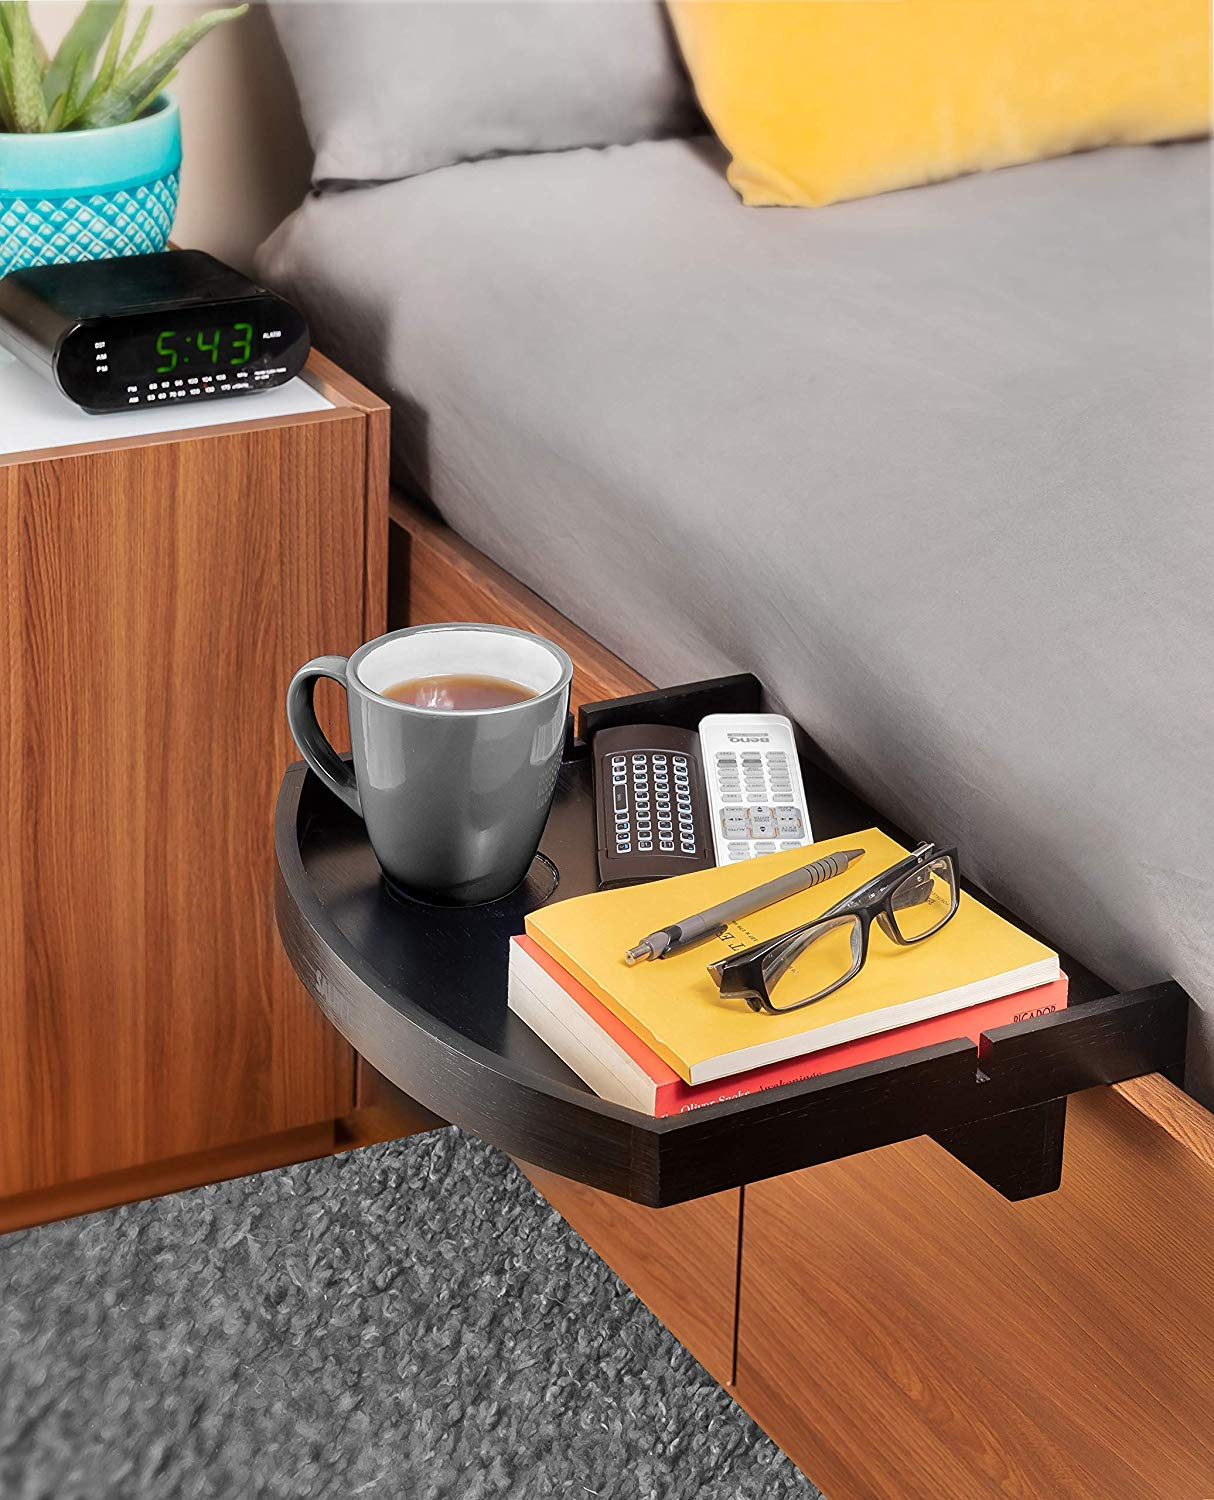 Bedside Shelf Nightstand Organizer Caddy by SALBEE A Unique Design with Soft Curved Edges Floating Bamboo Table Tray with in-Built Cup Holder Easy to Attach to Bed Frames Black Color